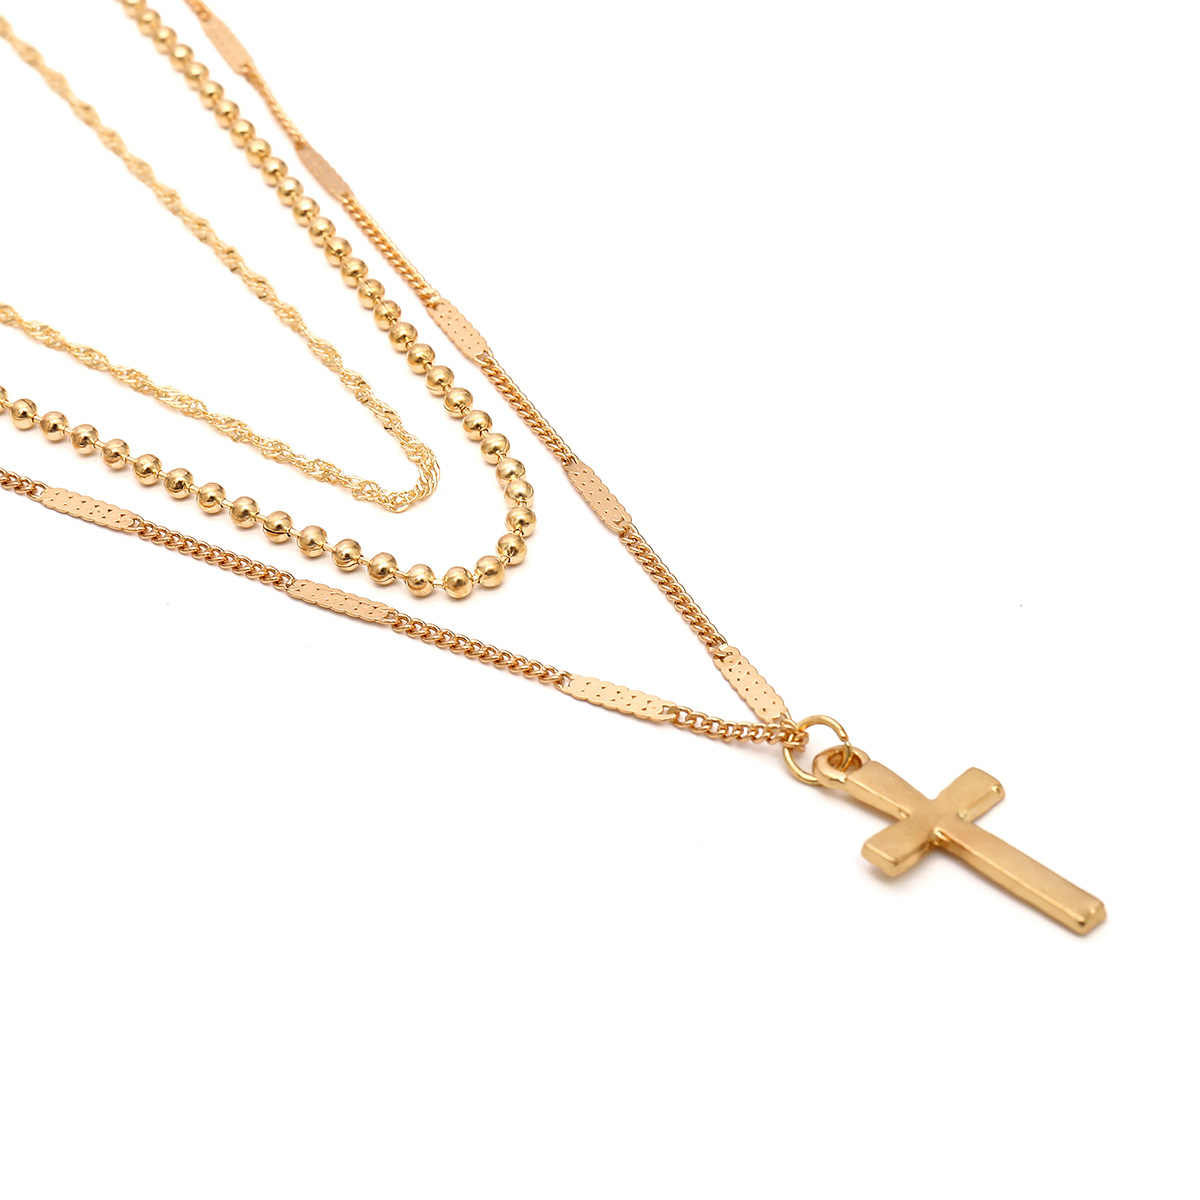 Vintage Gold Silver metal Cross pendant necklace 3 Layers Choker Necklaces Bohemian Jewelery Fashion sweater chain accessories